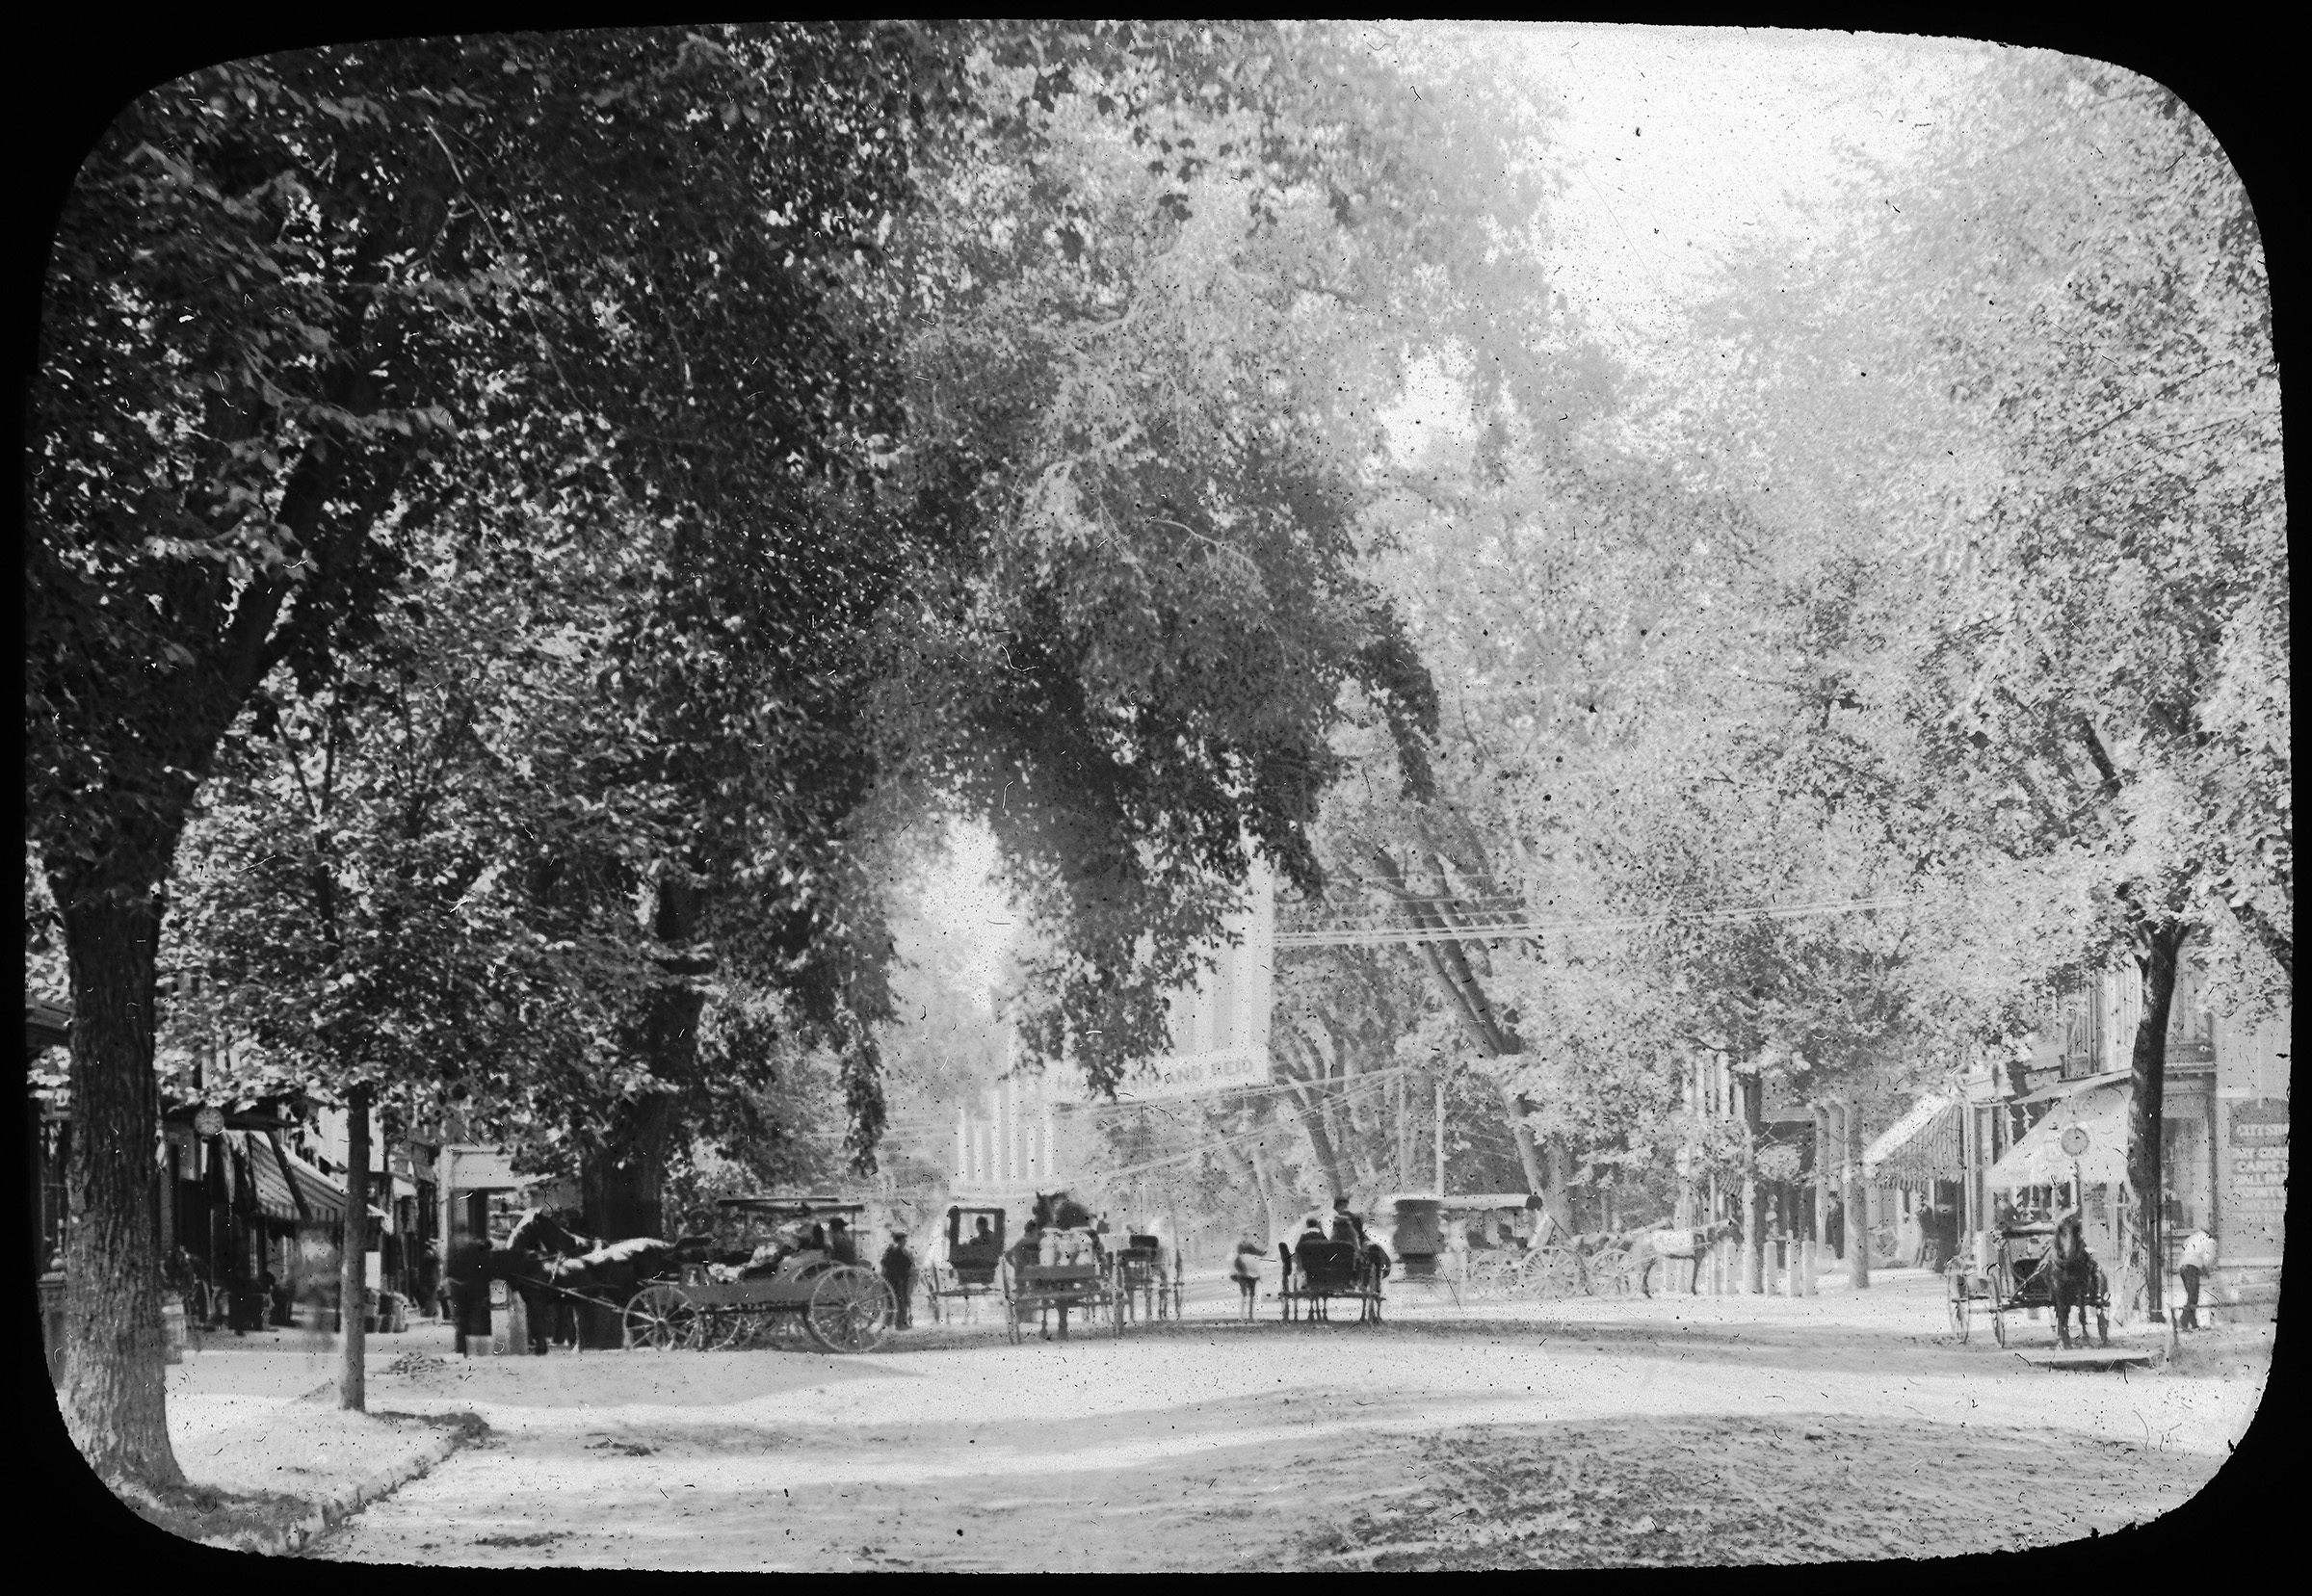 Great Barrington's Main Street in the Nineteenth Century, when it had a classic American streetscape of mature street trees forming a canopy over the space.